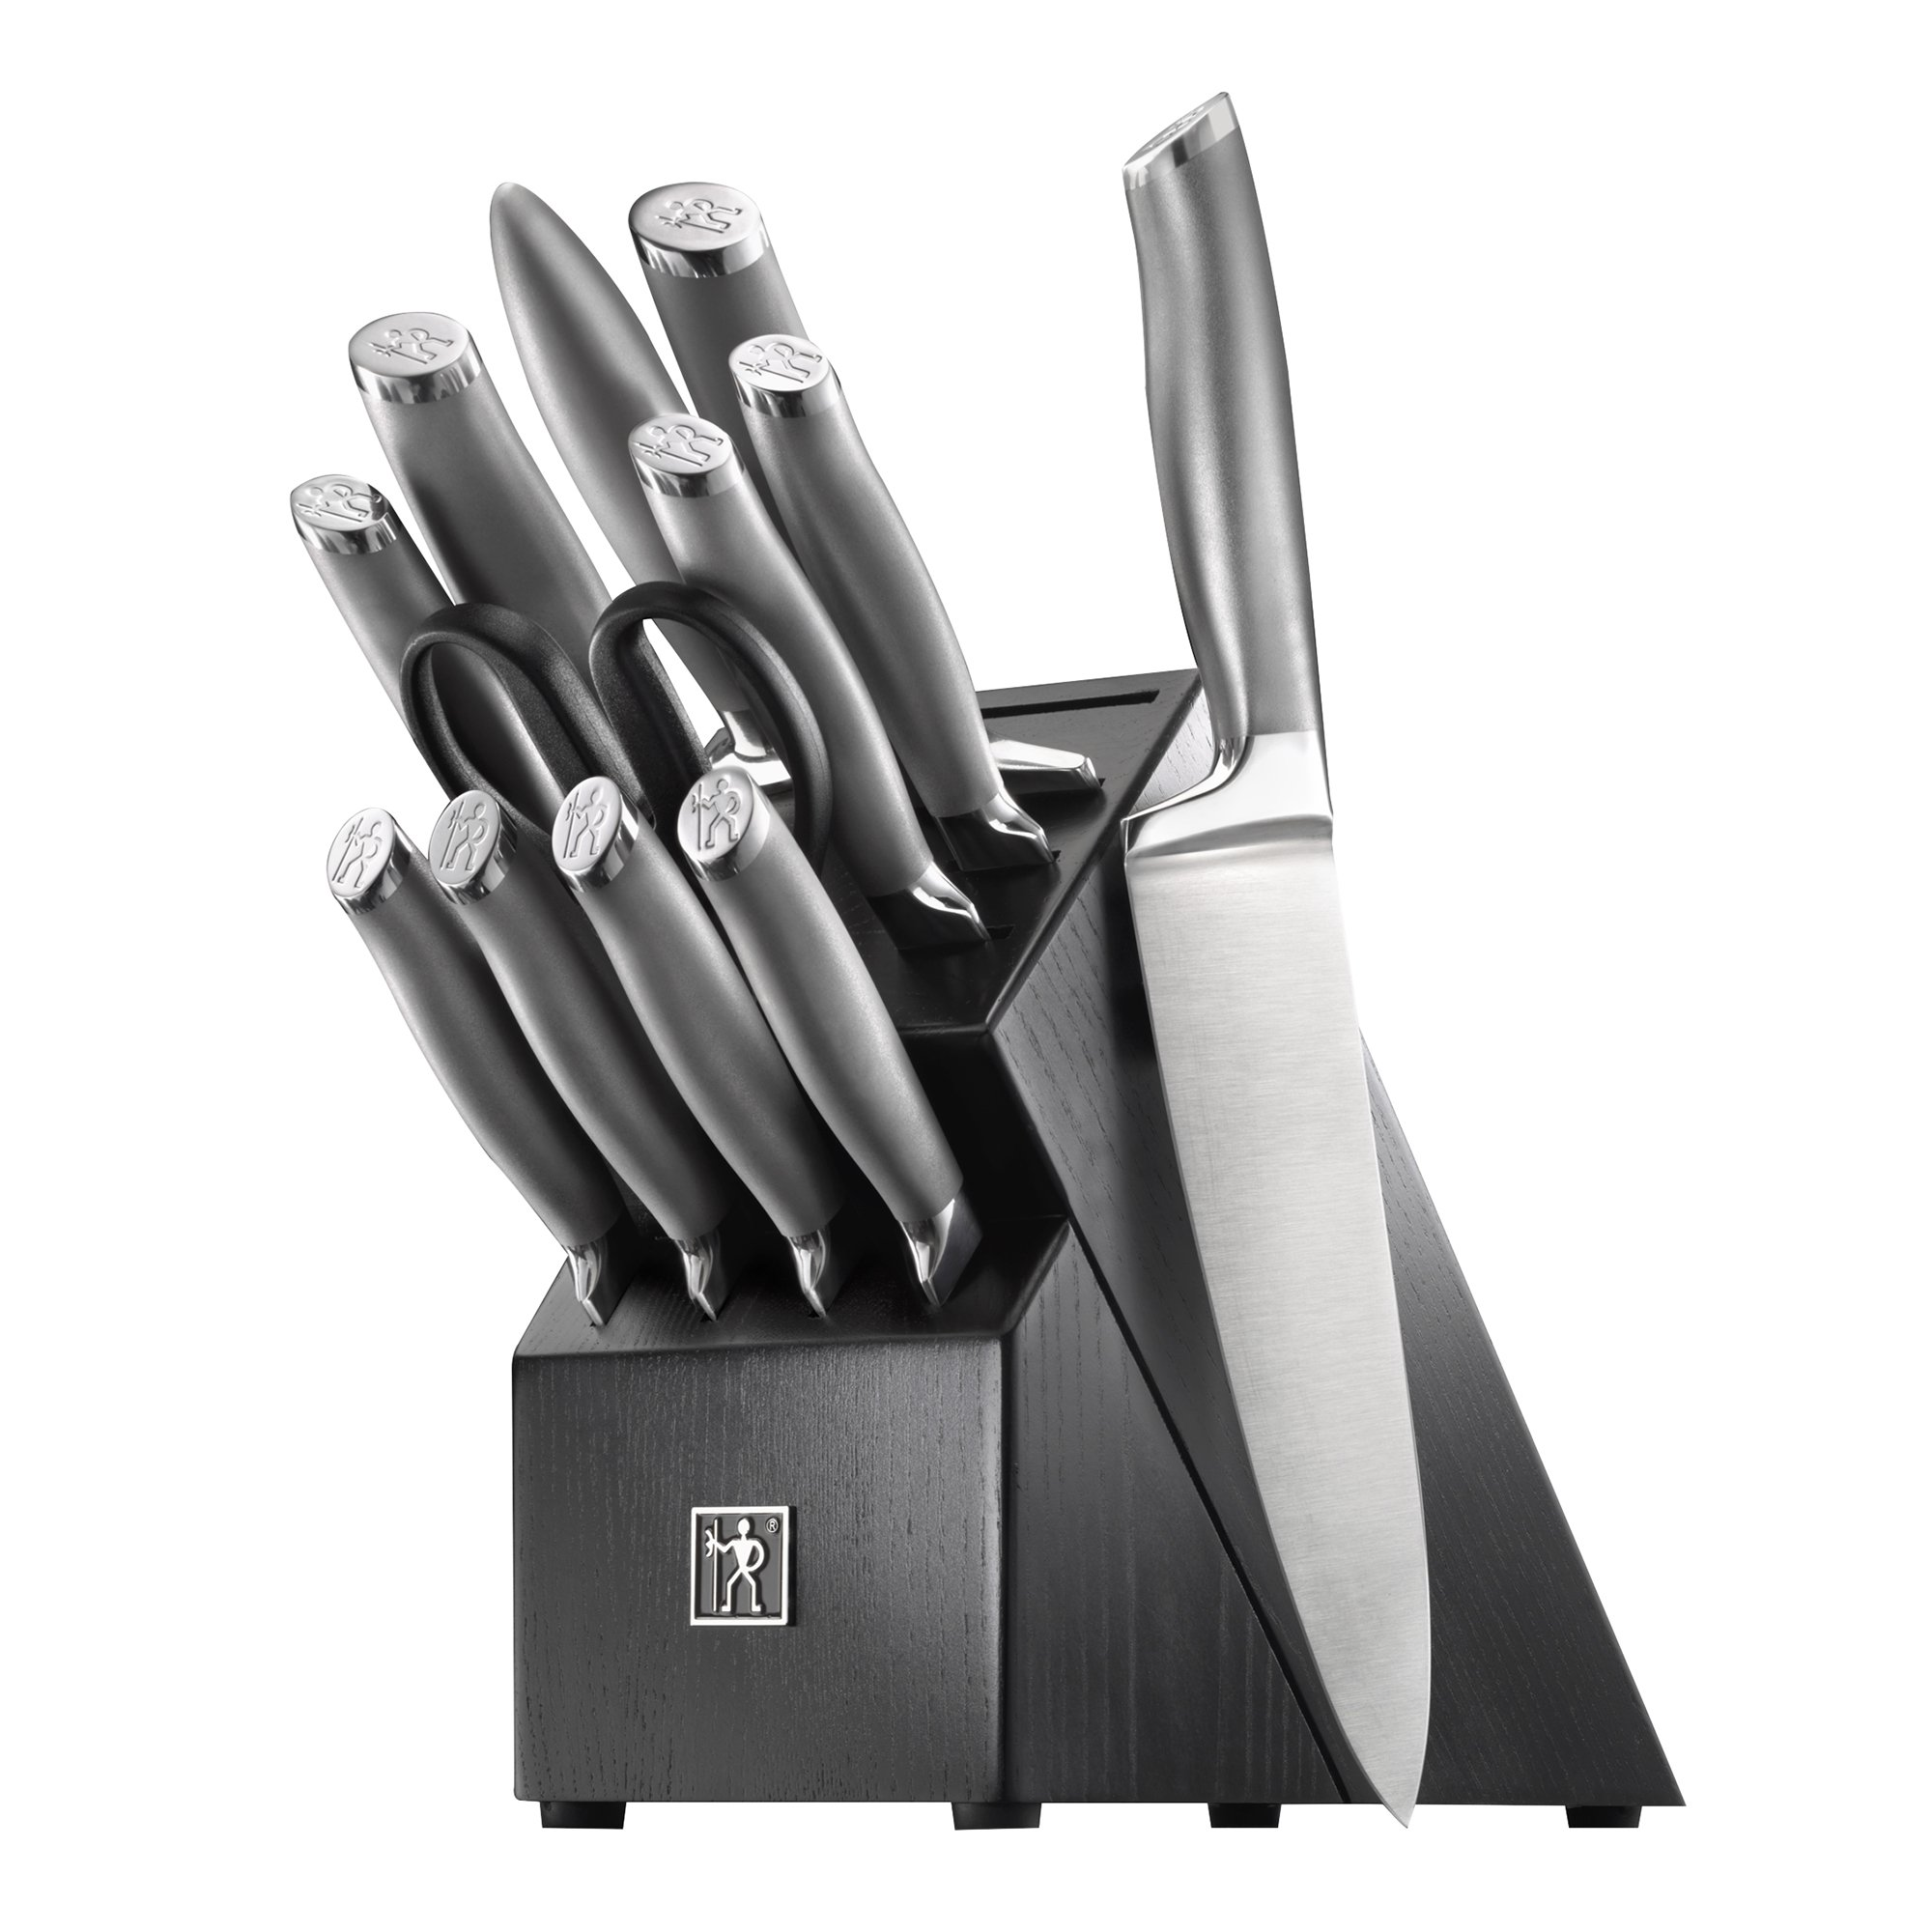 J.A. Henckels International Modernist 13-pc Knife Block Set by ZWILLING J.A. Henckels (Image #1)